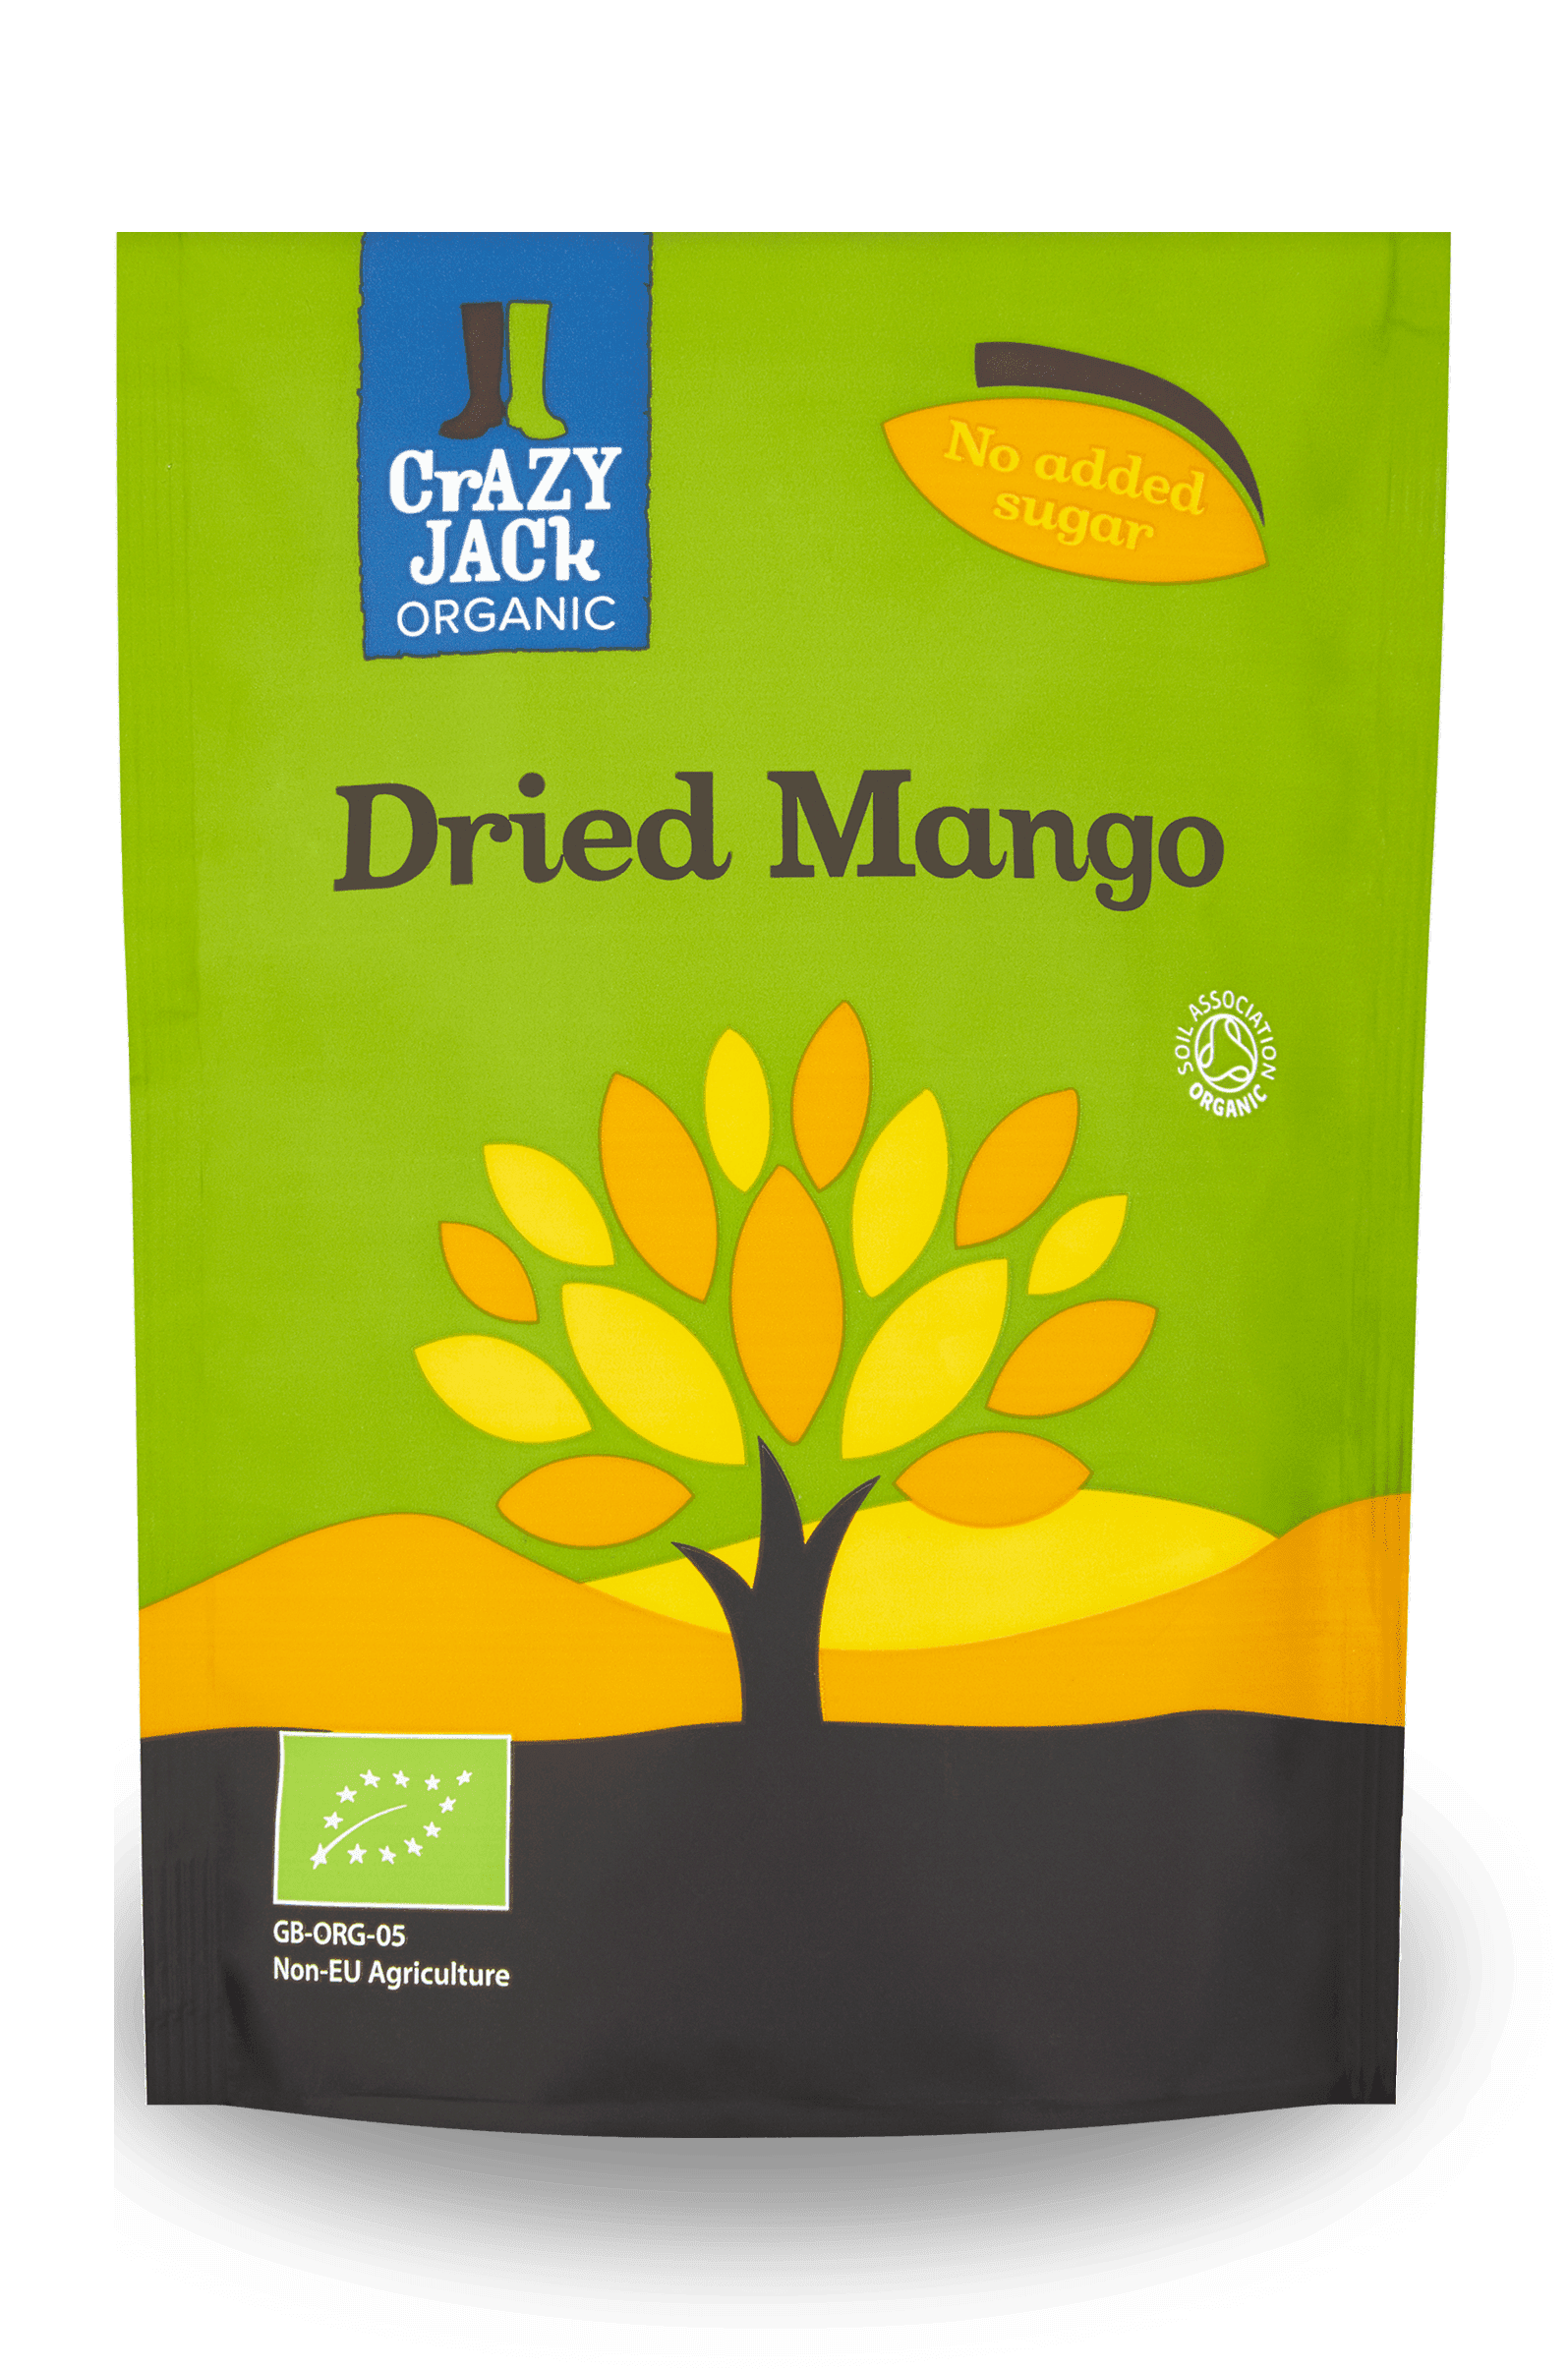 Crazy Jack Organic Dried Mango